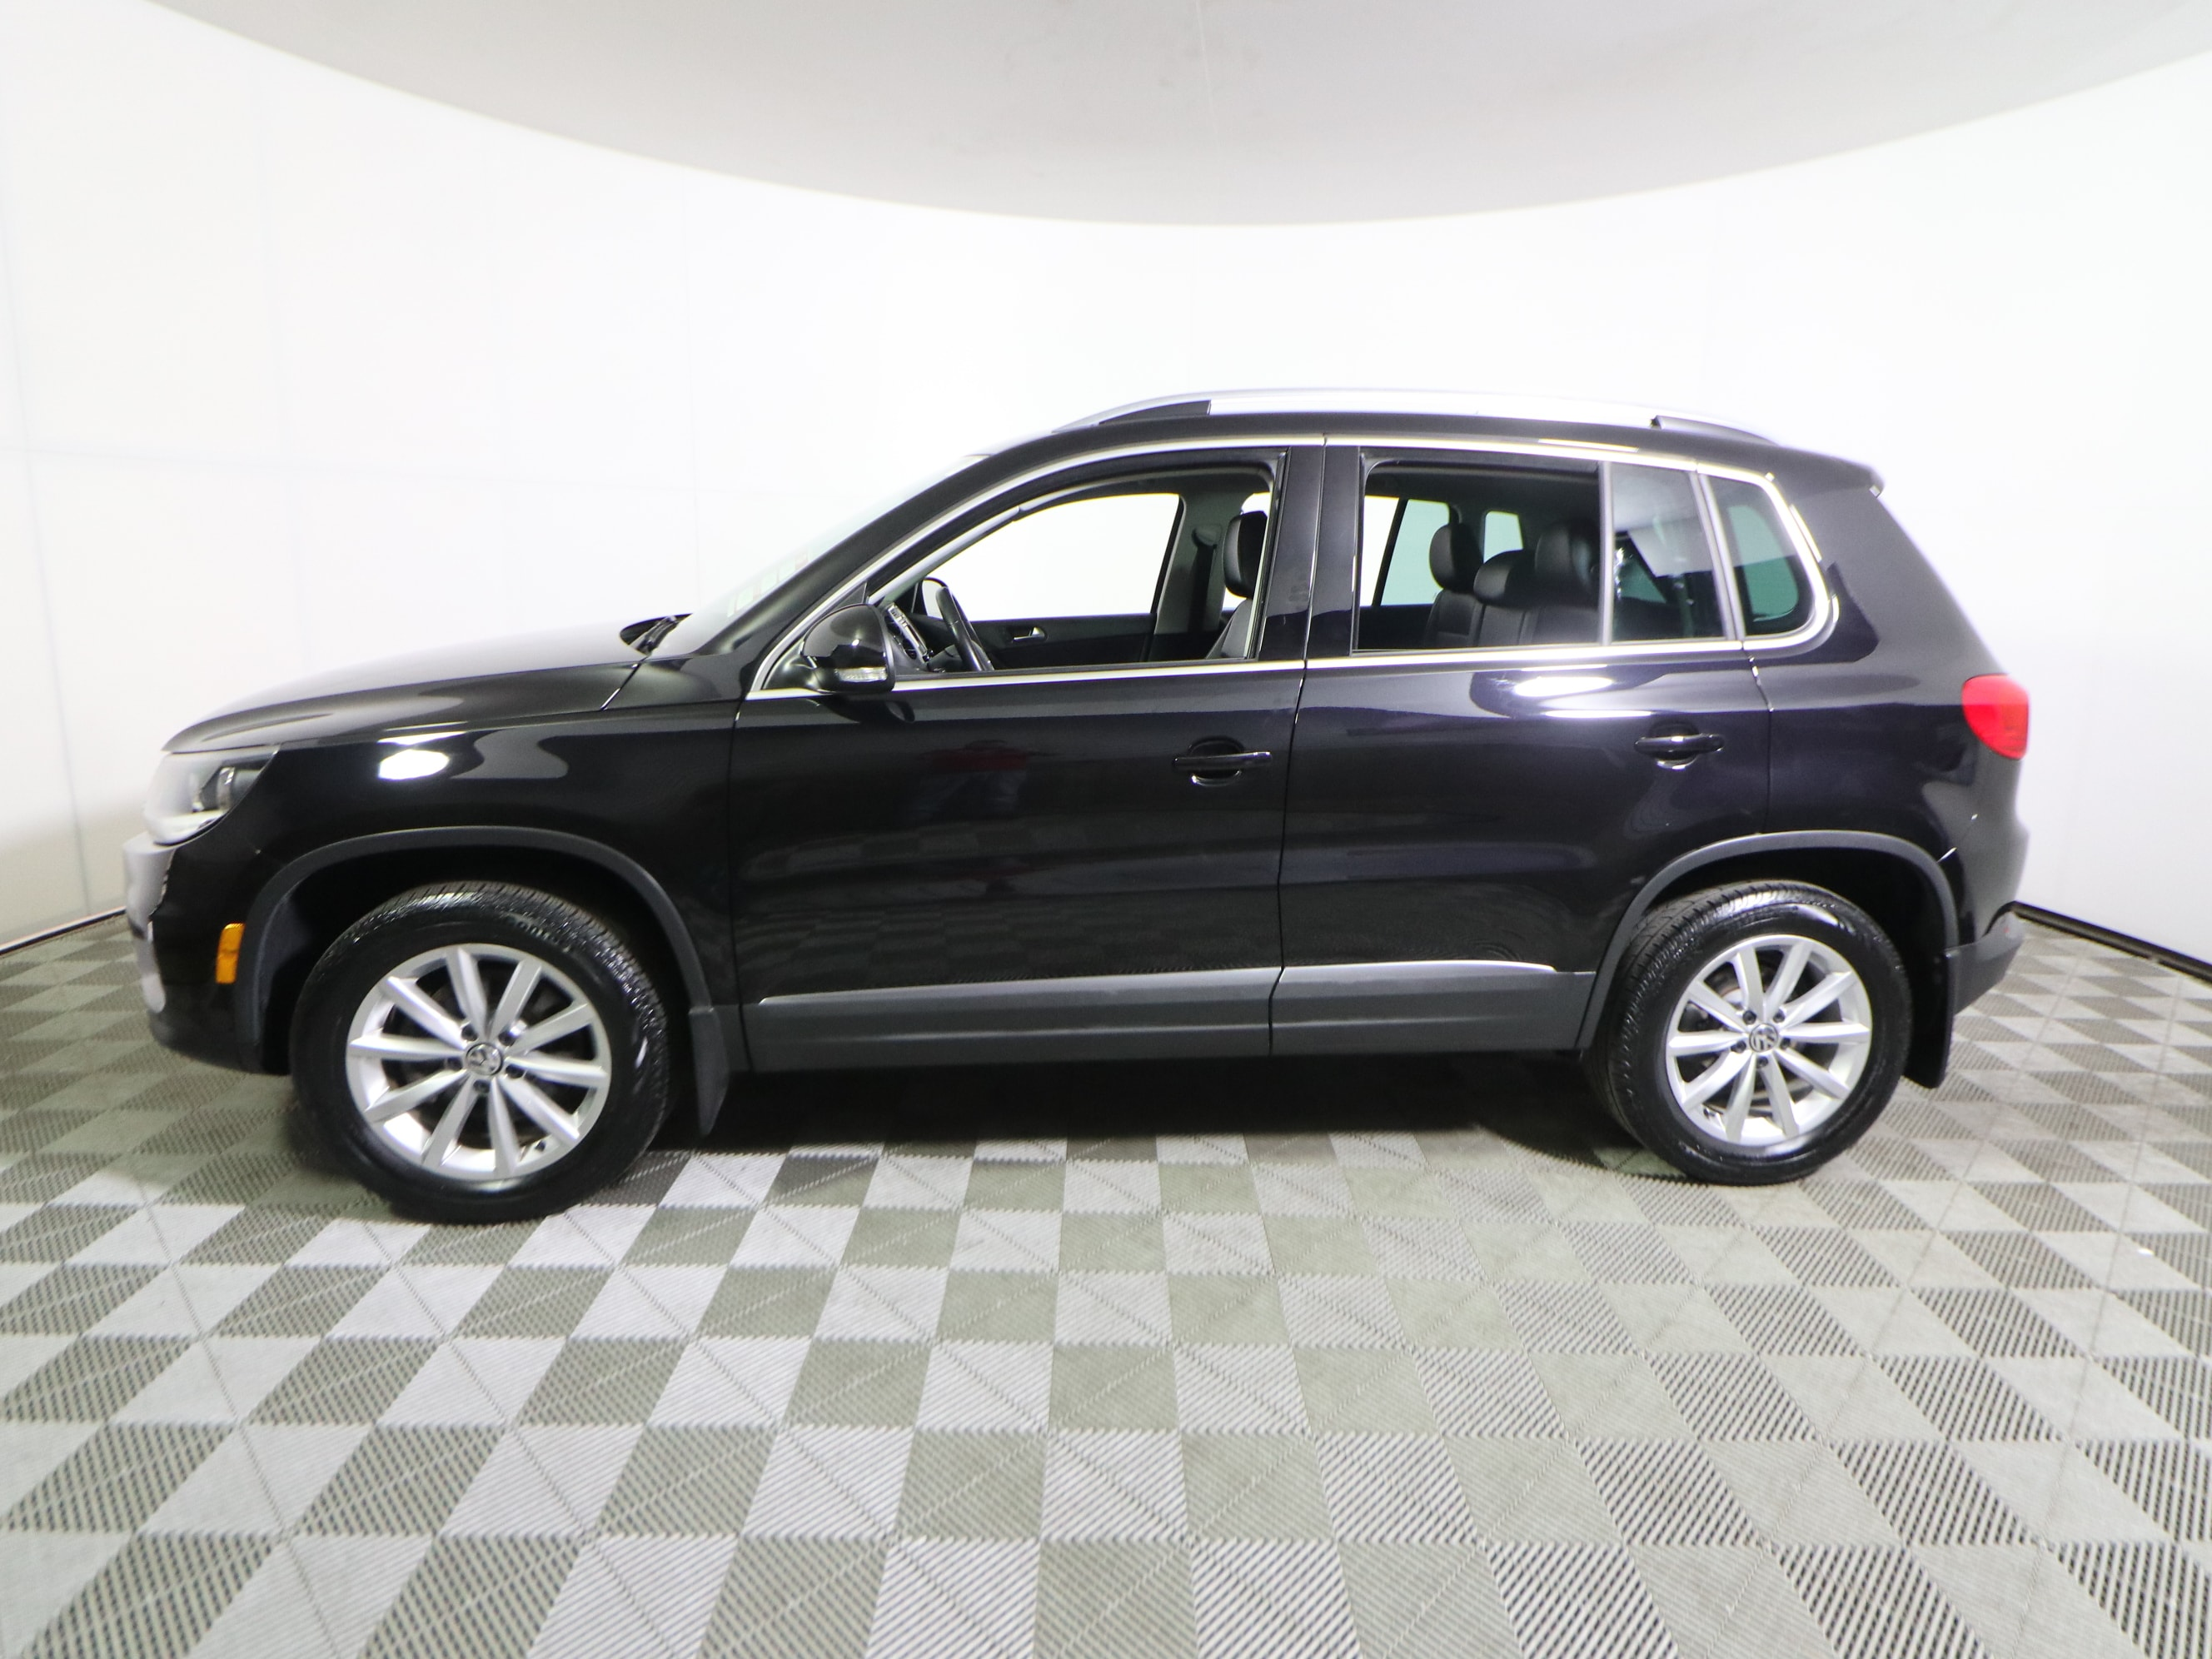 Used 2017 Volkswagen Tiguan For Sale at Bourne's Auto Center